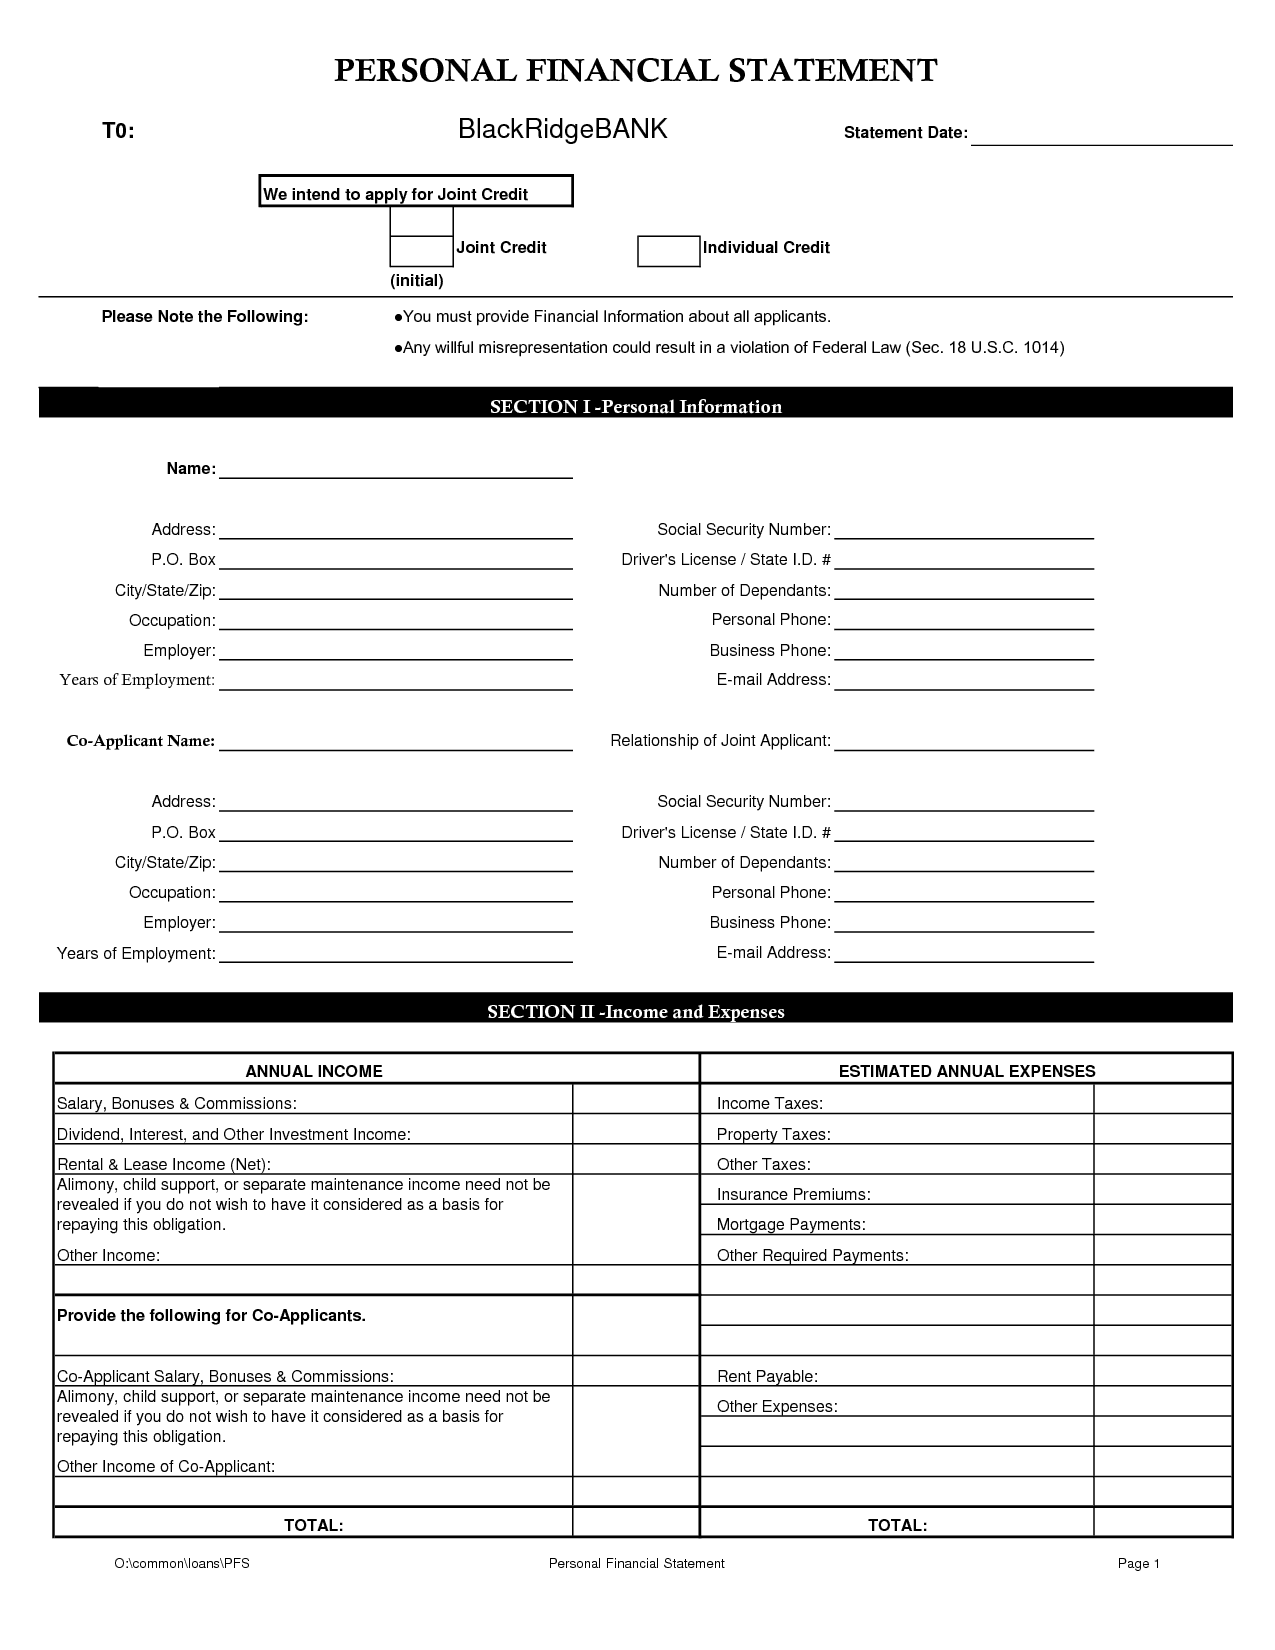 Balance Sheet Template For Small Business Free And Free Financial Statements Templates For Small Business